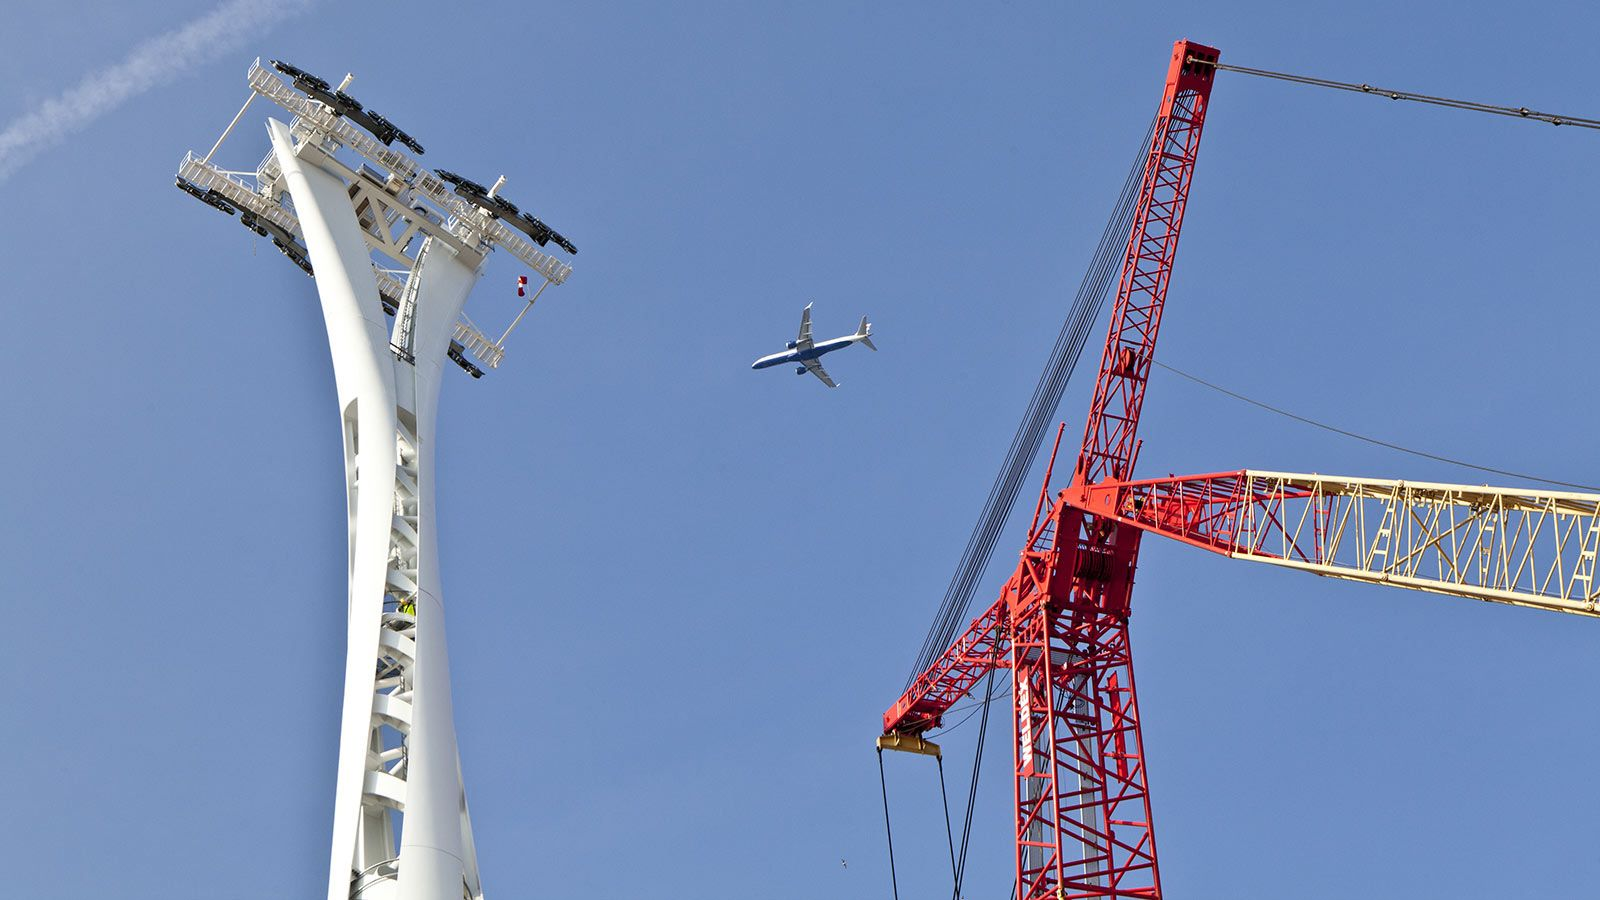 Plane Flying Over Emirates Air Line Cable Car - Mace Group